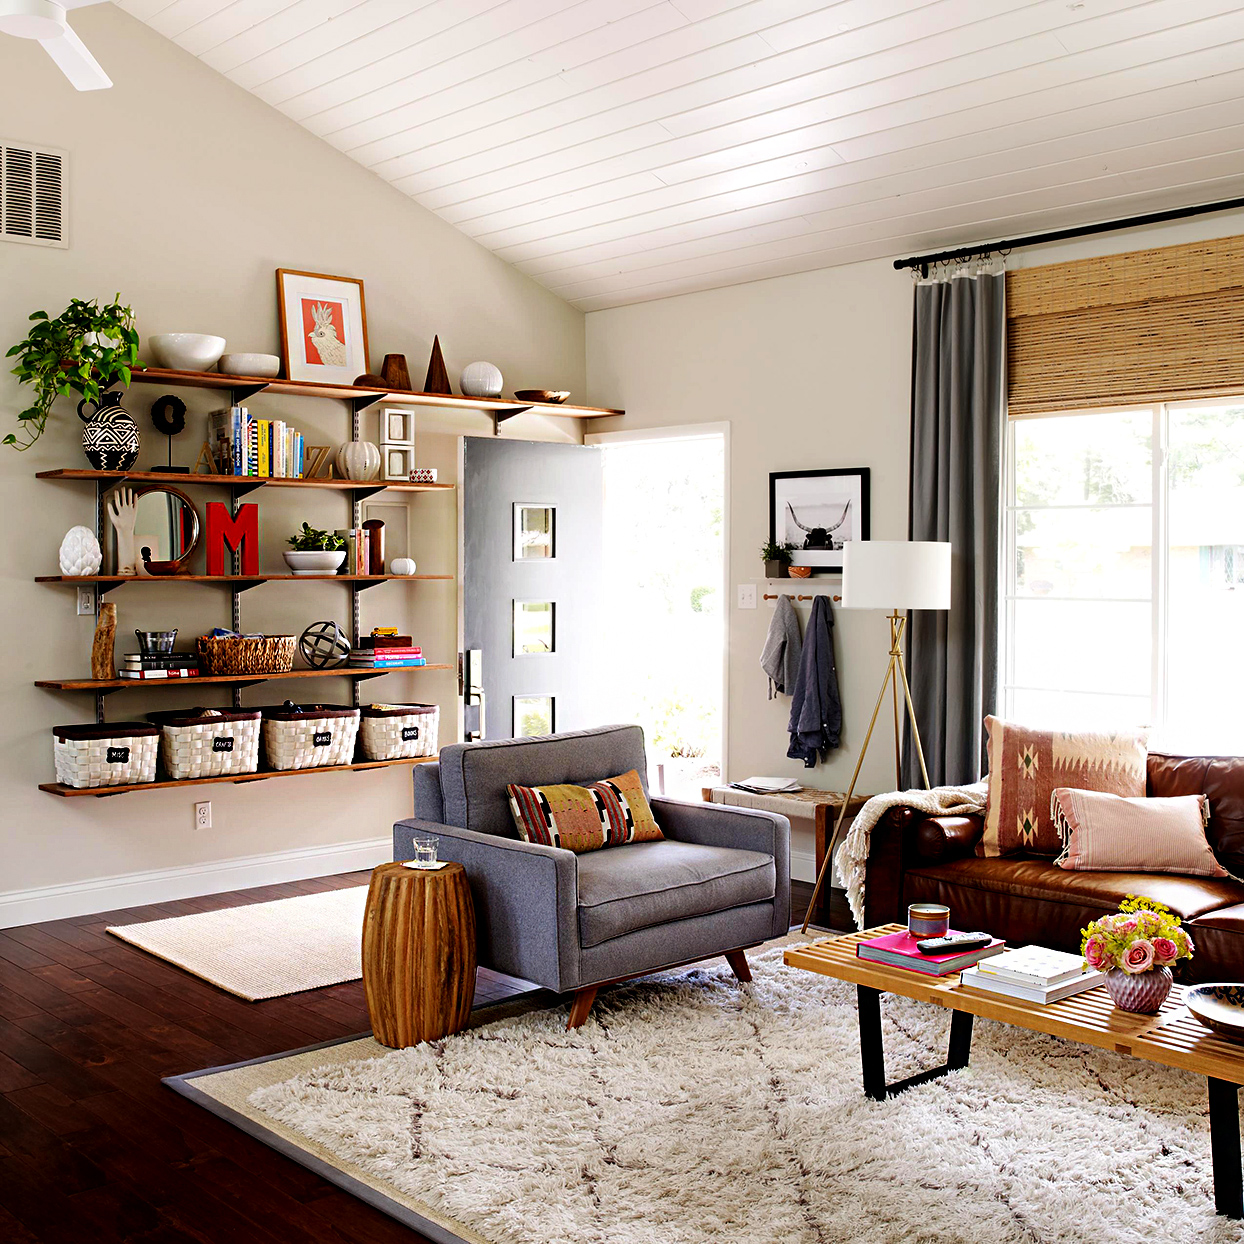 Living room with wooden shelves filled with décor